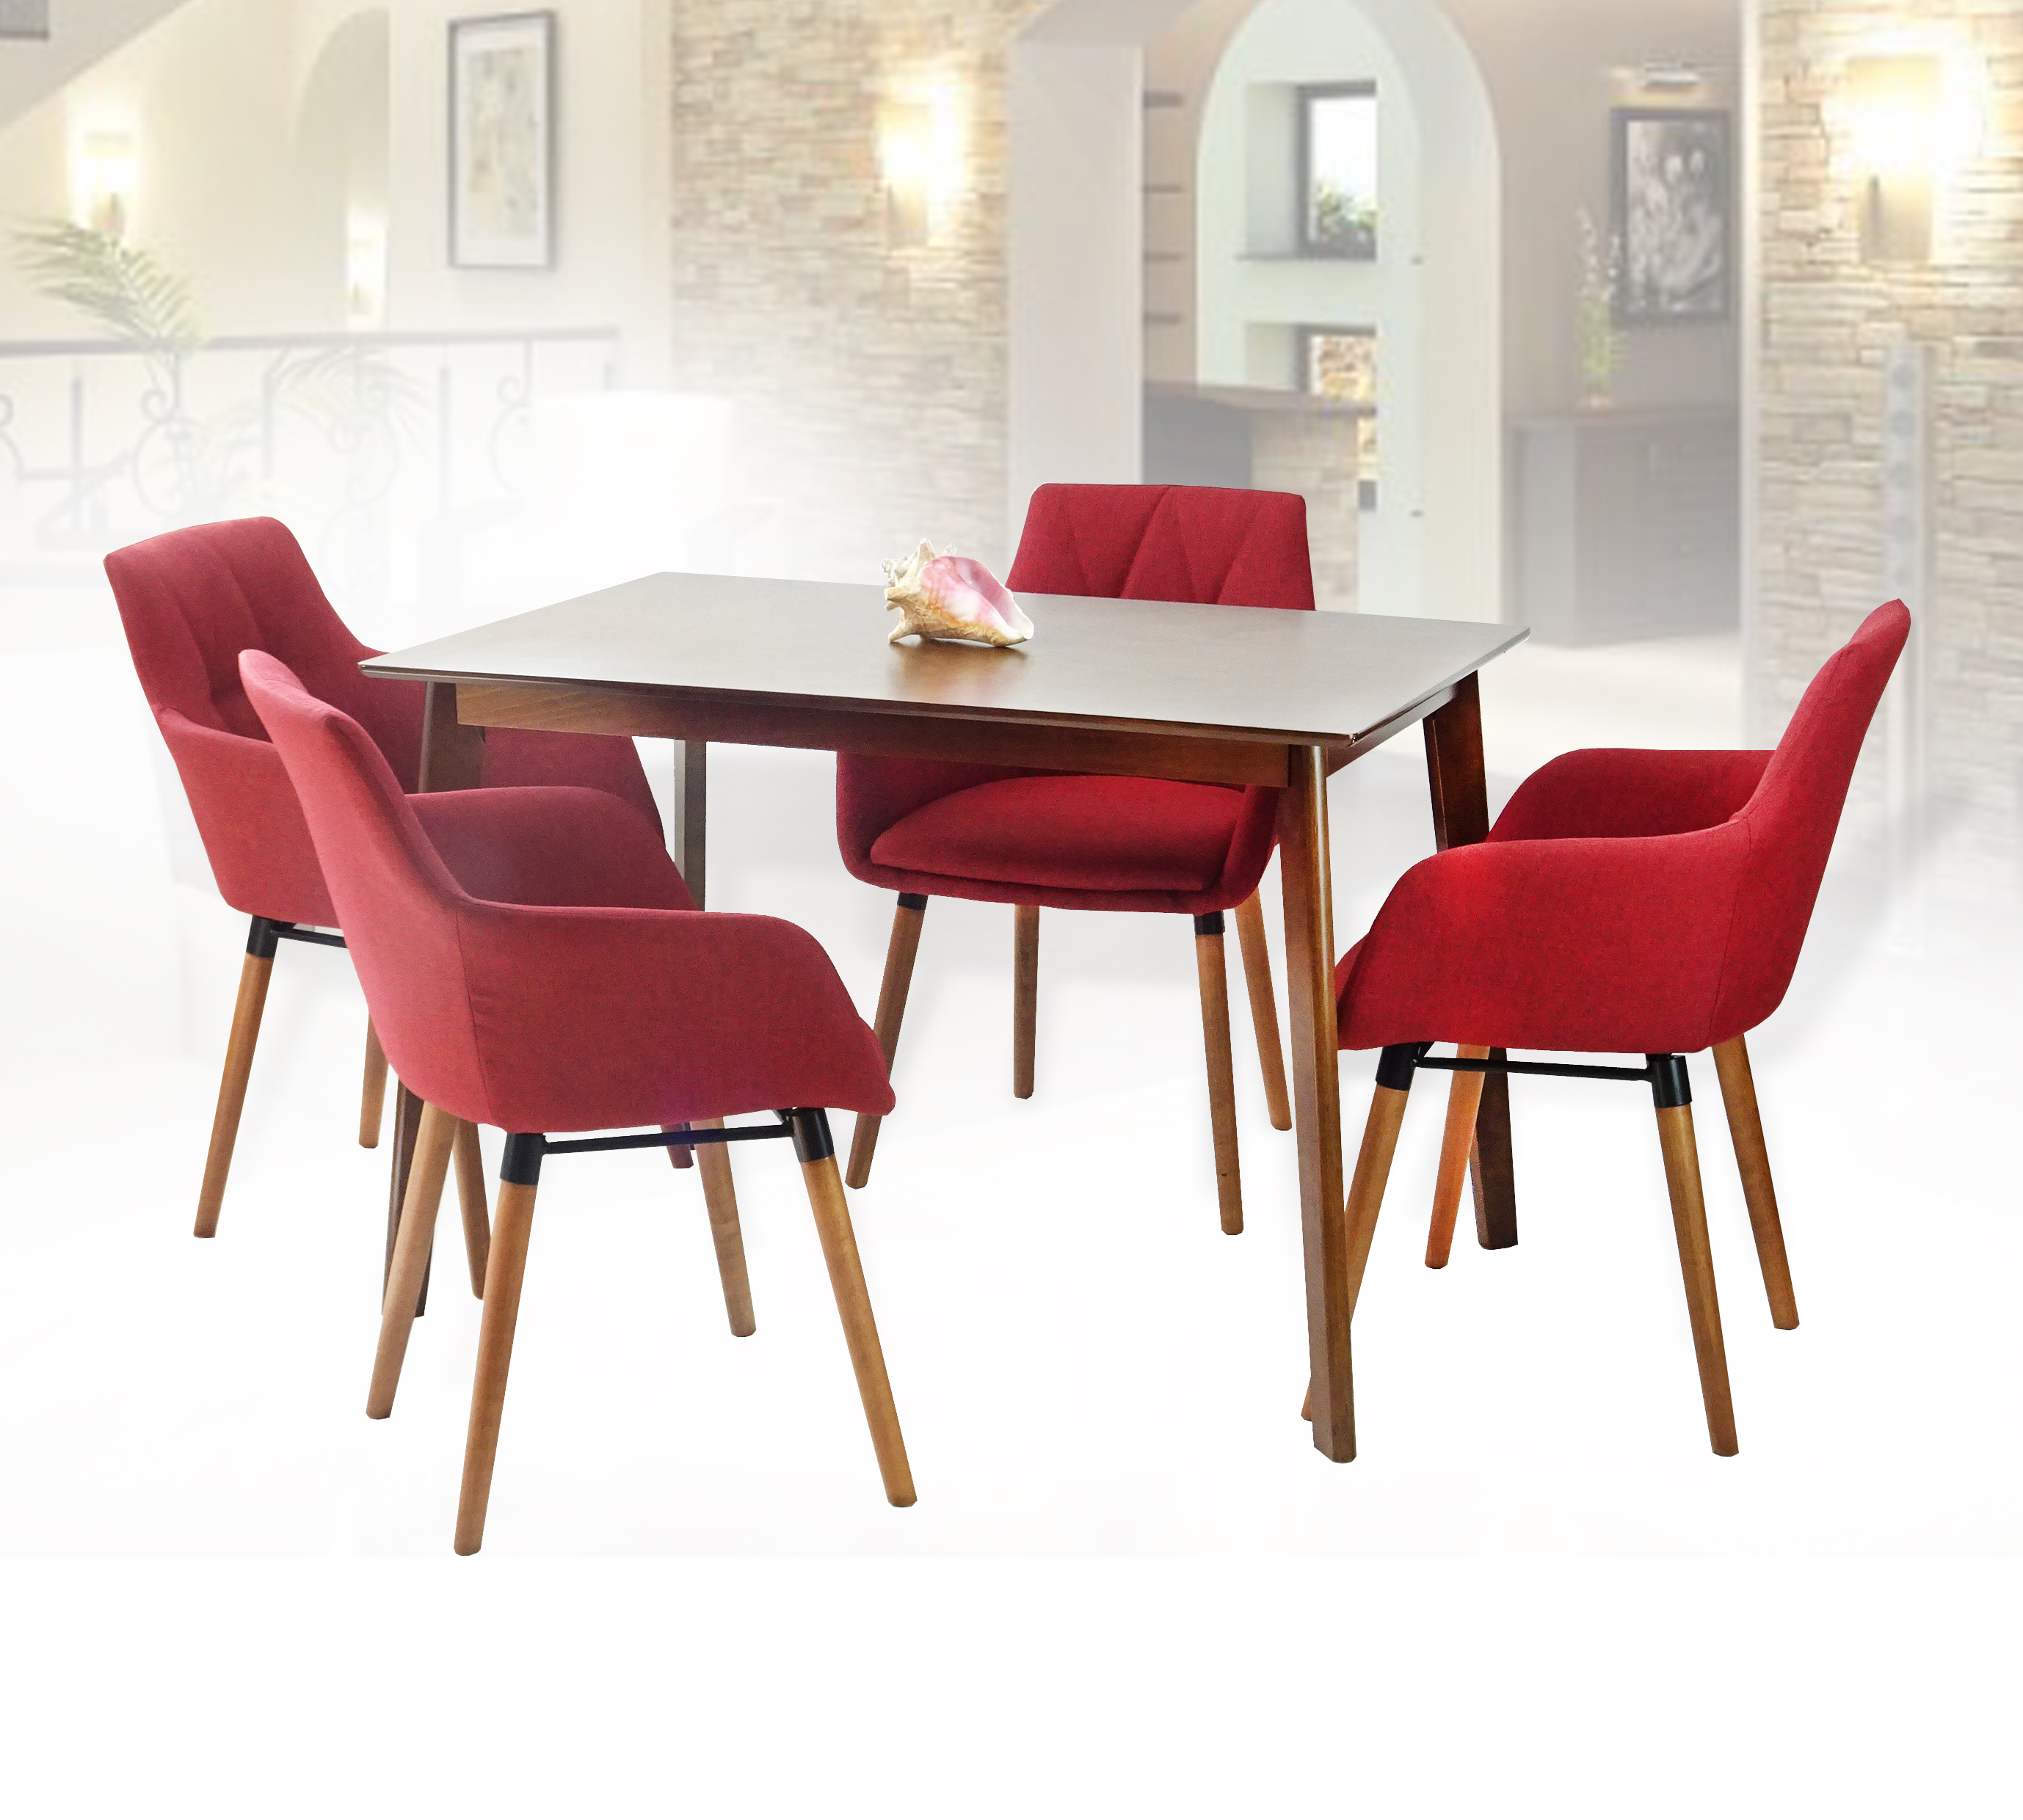 Fine Dining Kitchen Set Of 5 Rectangular Wooden Brown Table With 4 Alba Armchairs Red Color Unemploymentrelief Wooden Chair Designs For Living Room Unemploymentrelieforg